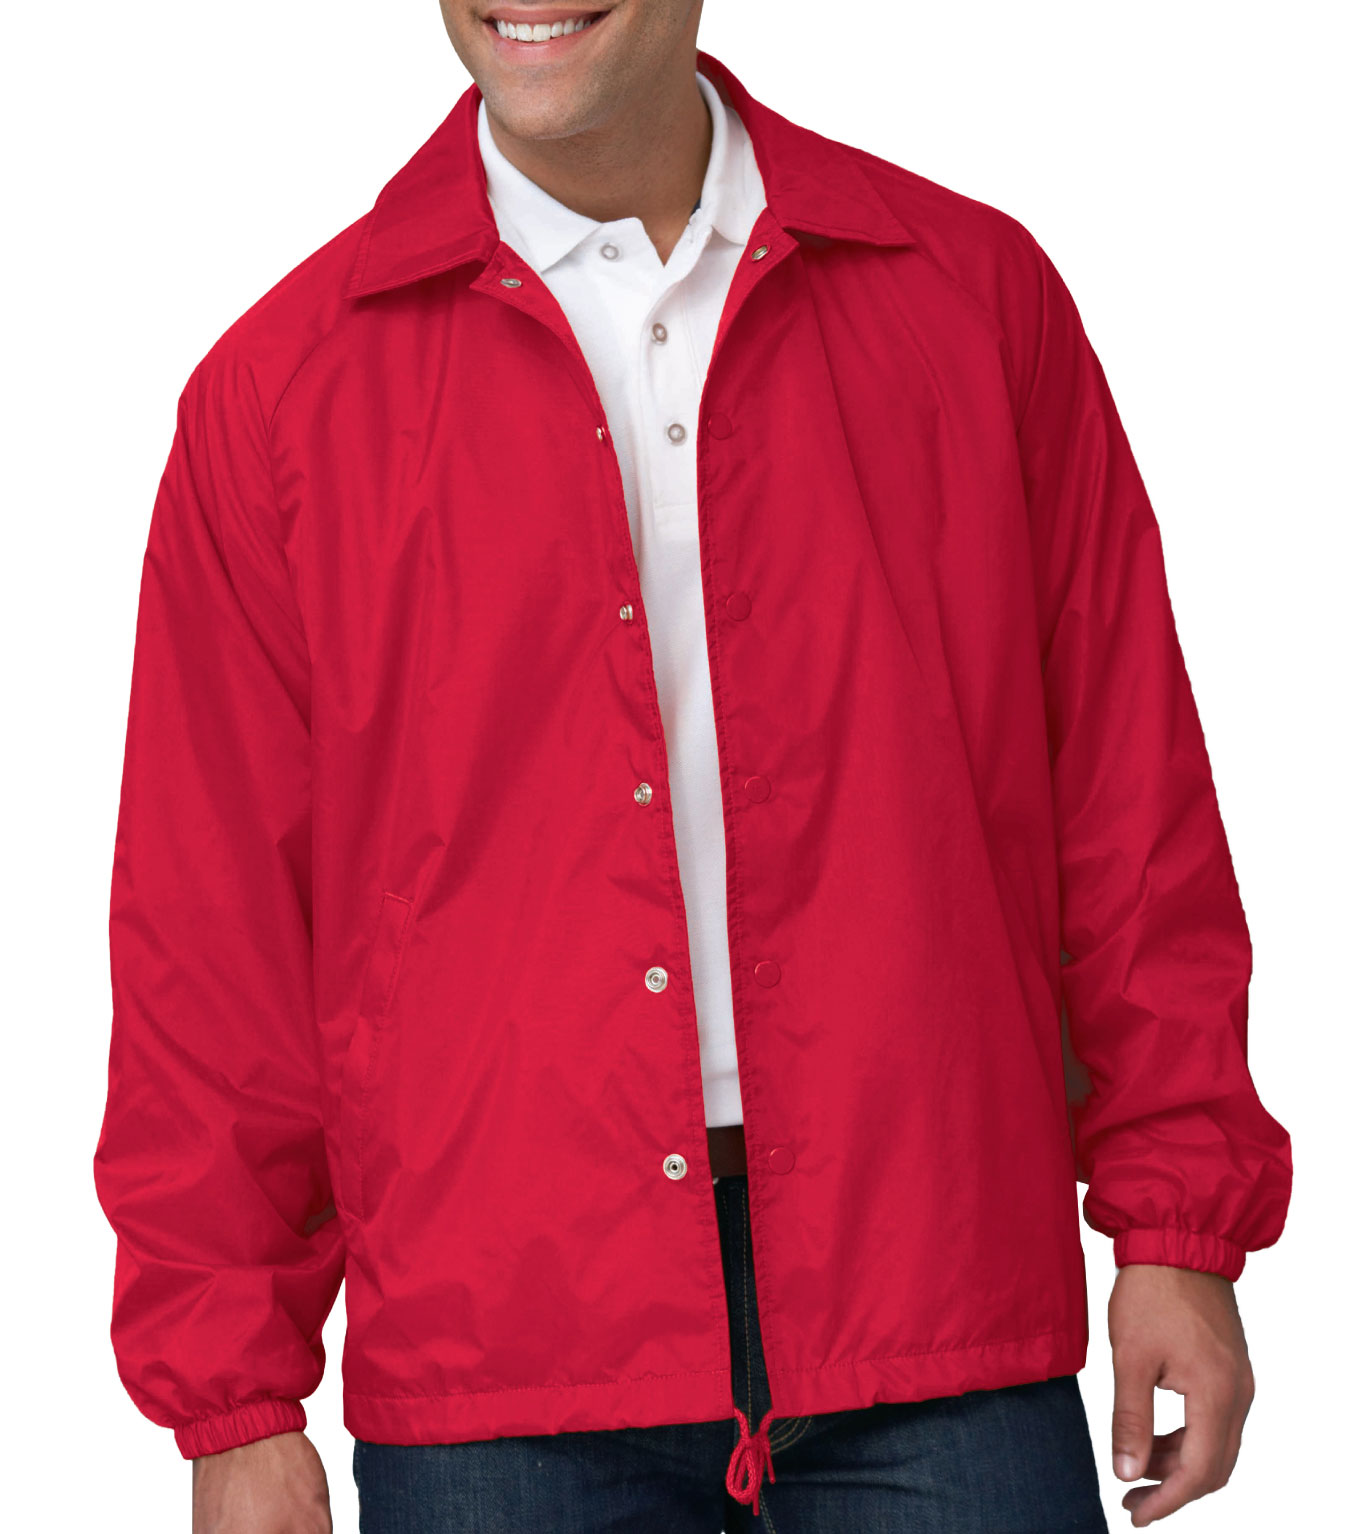 Customize Coaches Windbreaker Jacket